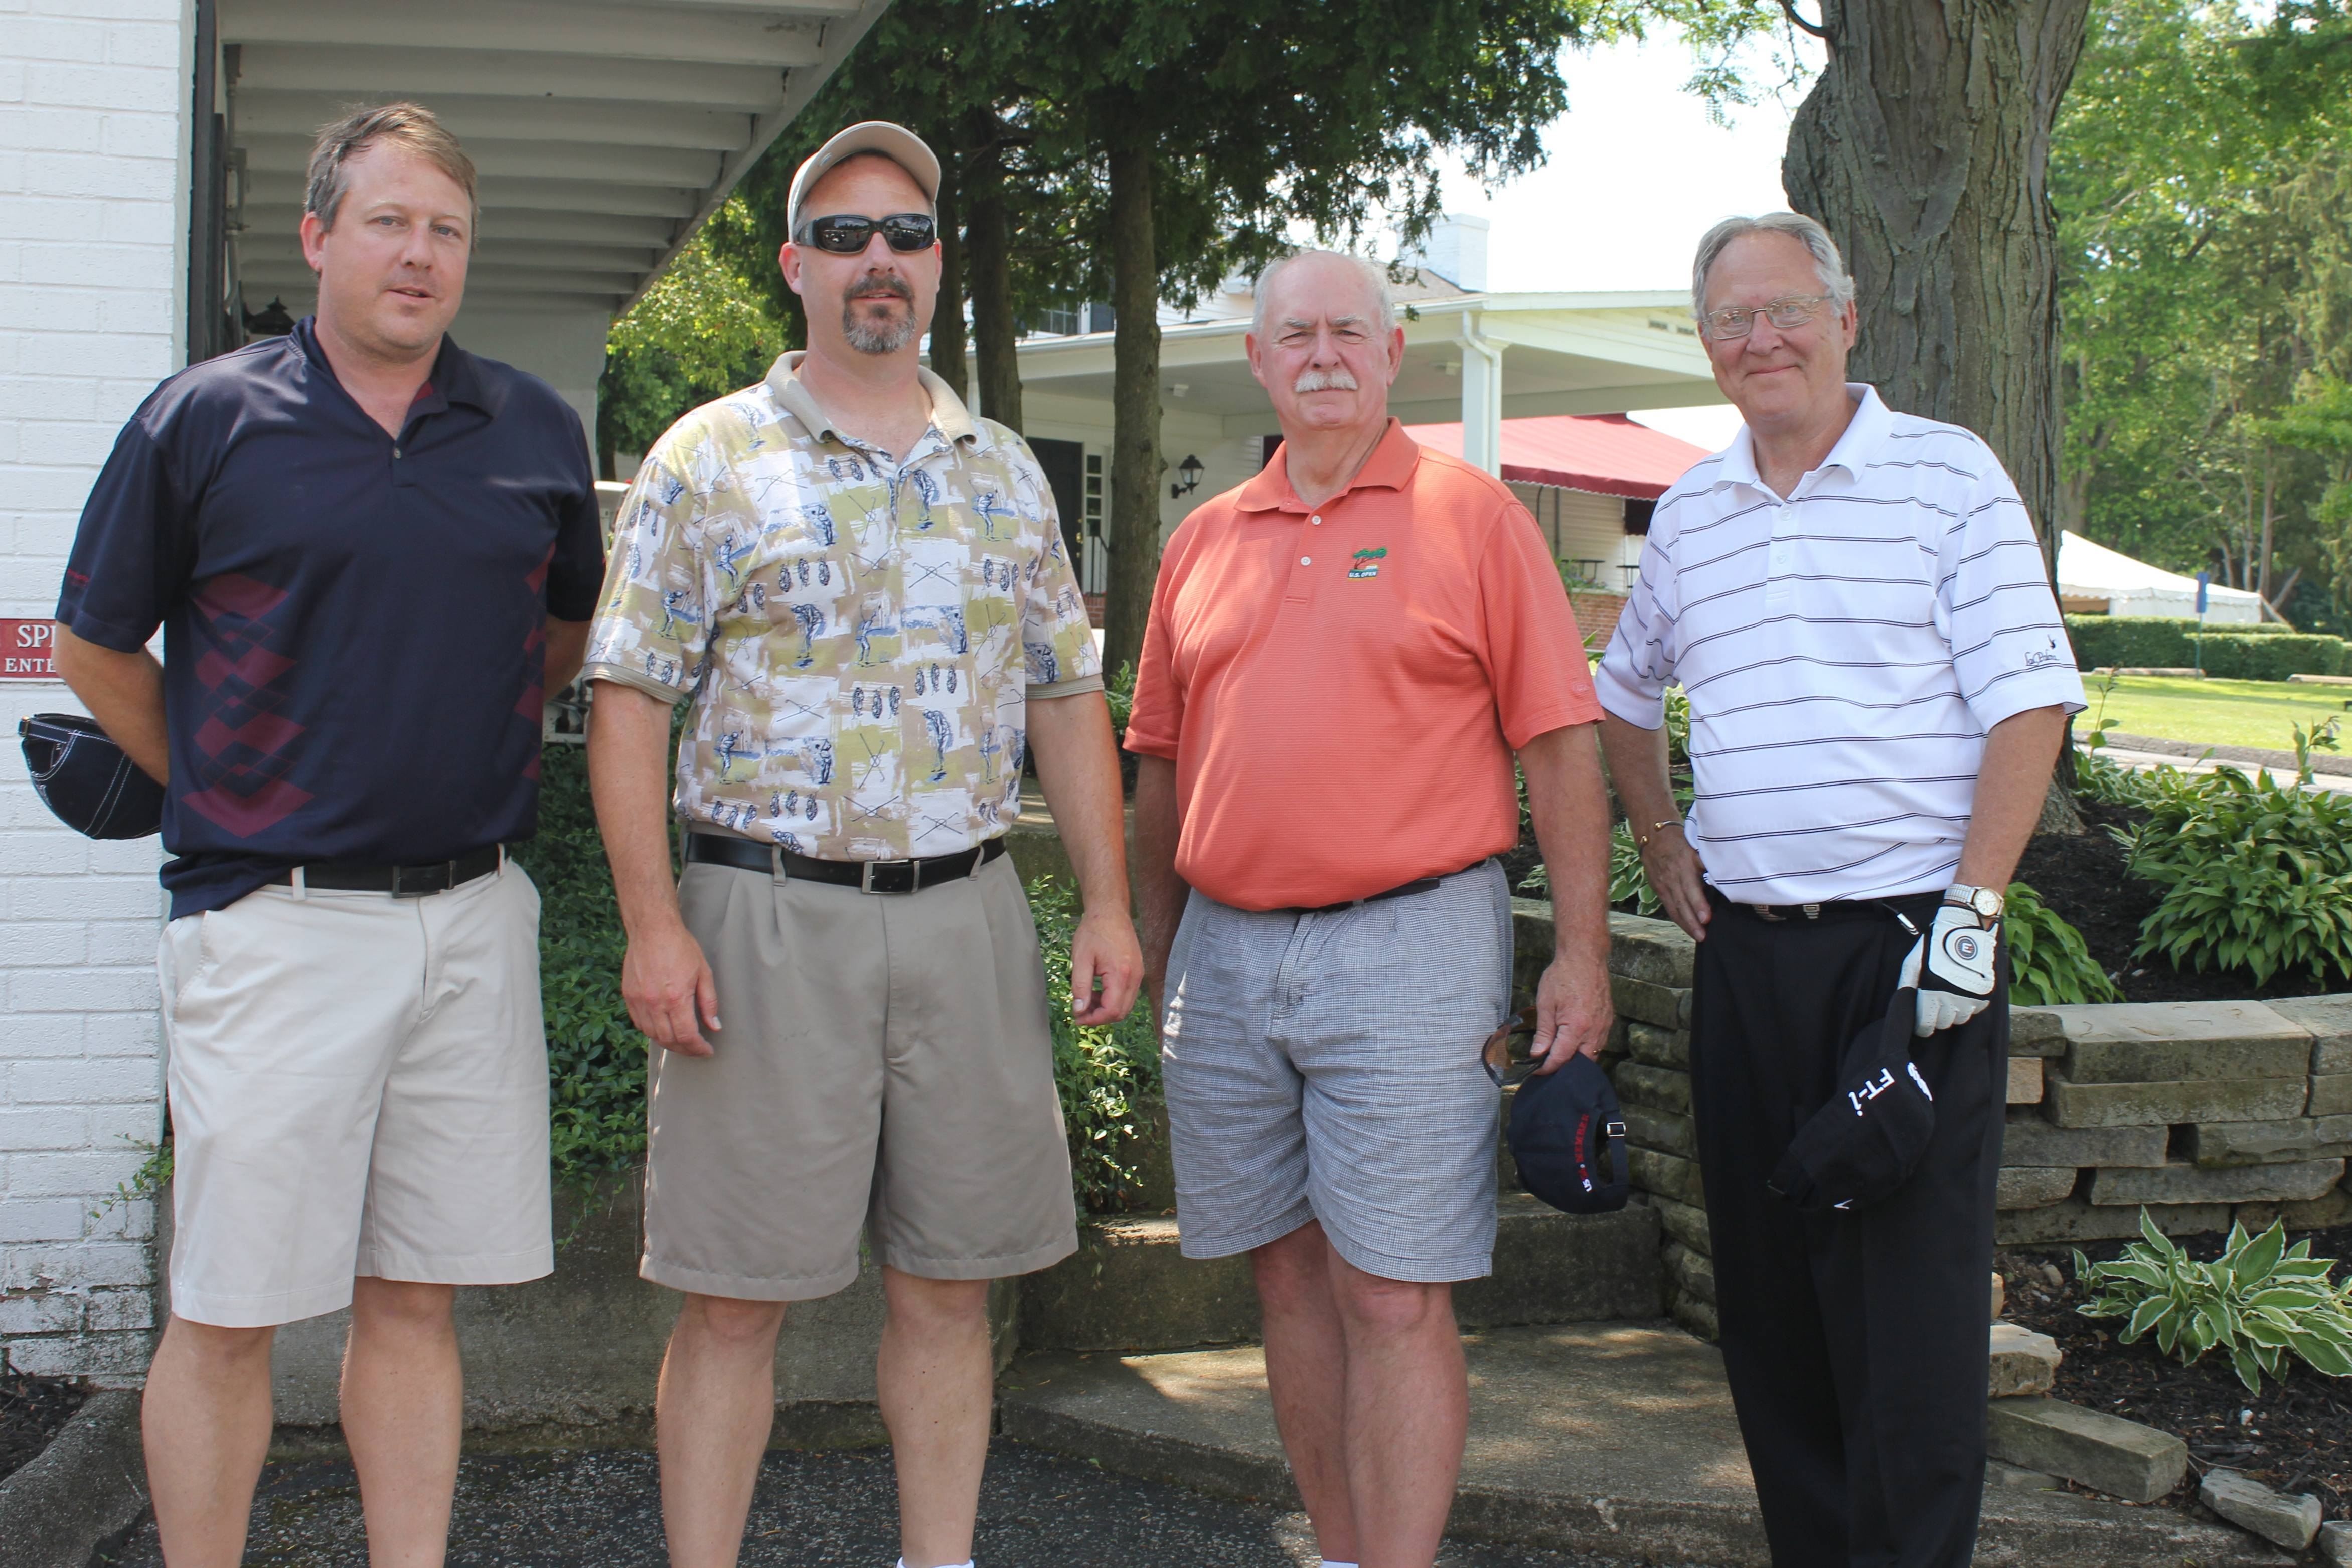 The 25th Samaritan Hospital Foundation Charity Golf Classic